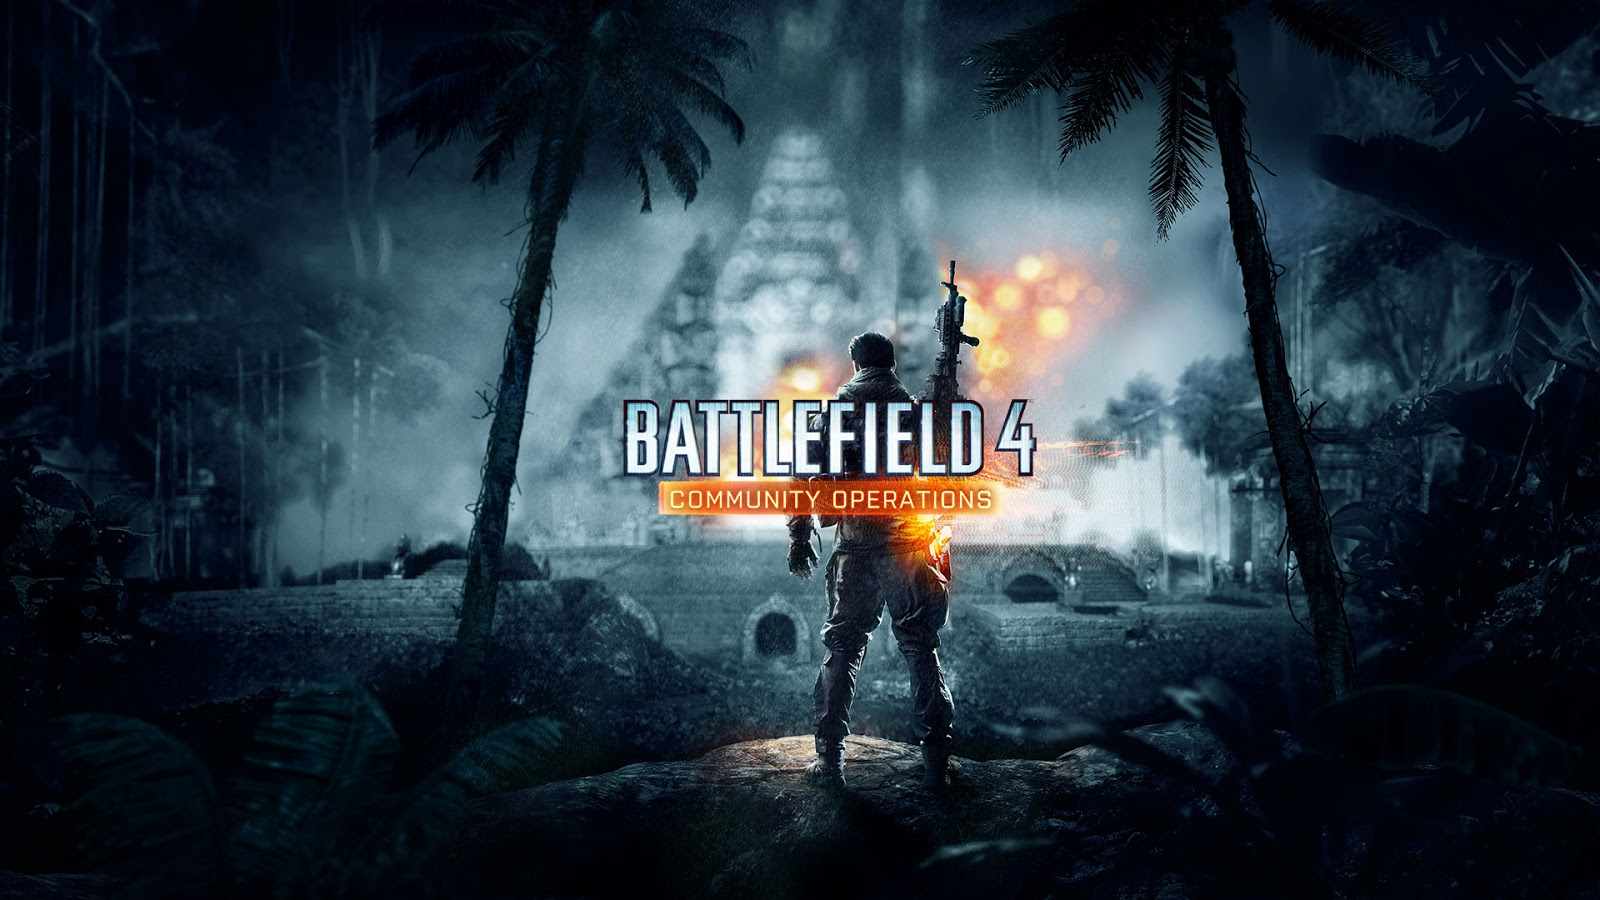 Anunciado oficialmente o DLC Battlefield 4: Community Operations